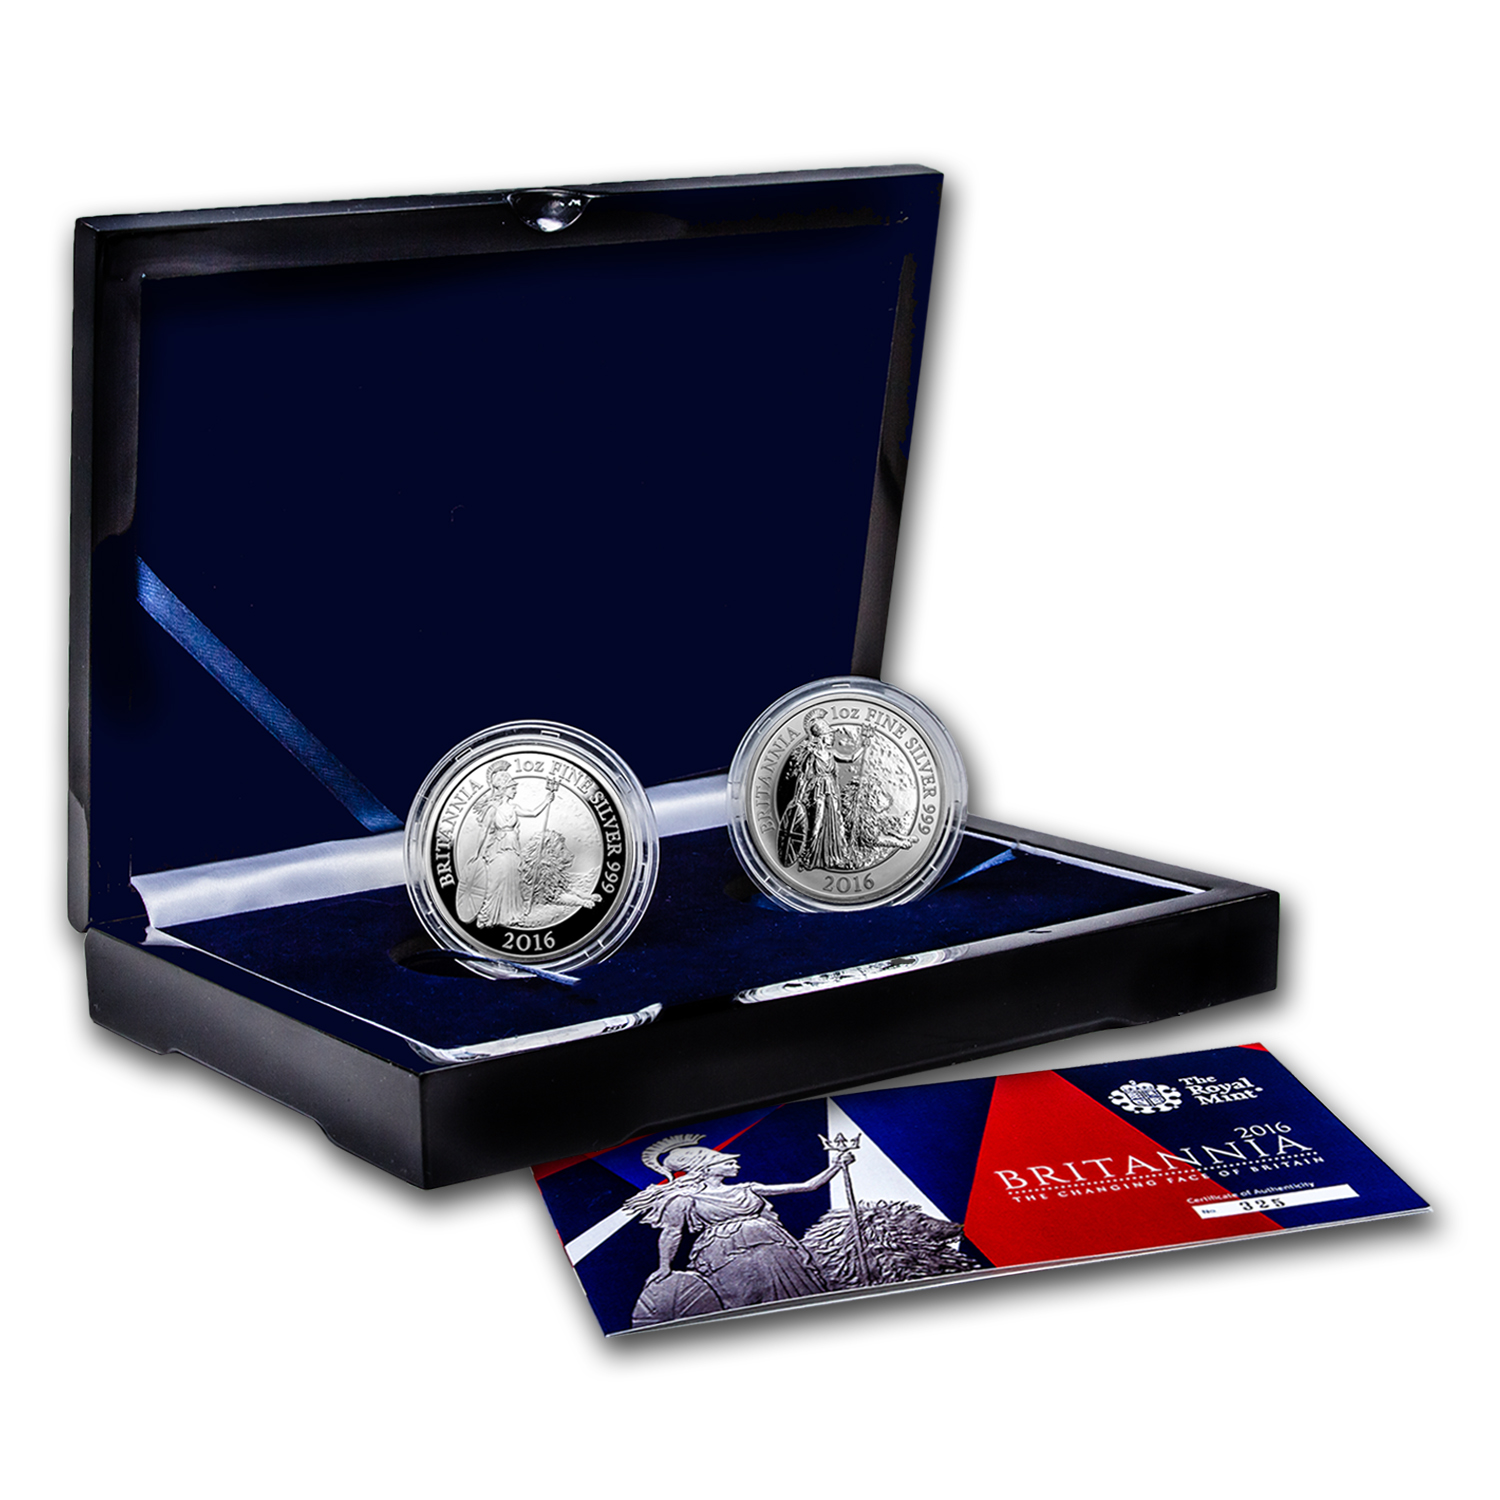 2016 2-Coin Silver 1 oz Britannia Proof/Reverse Proof Set